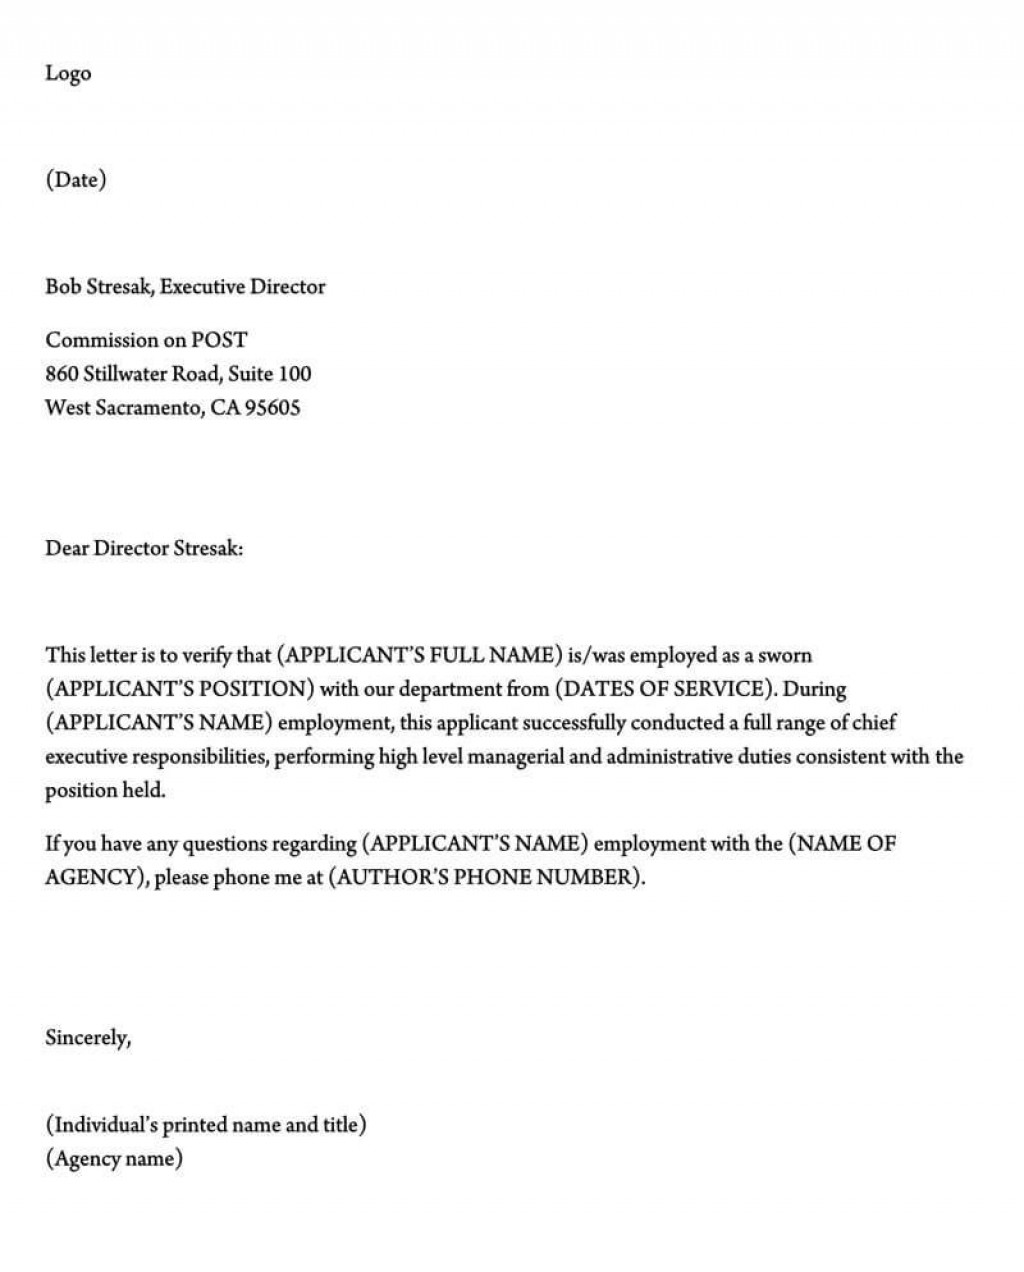 001 Unusual Employment Verification Letter Template Word Image  South AfricaLarge